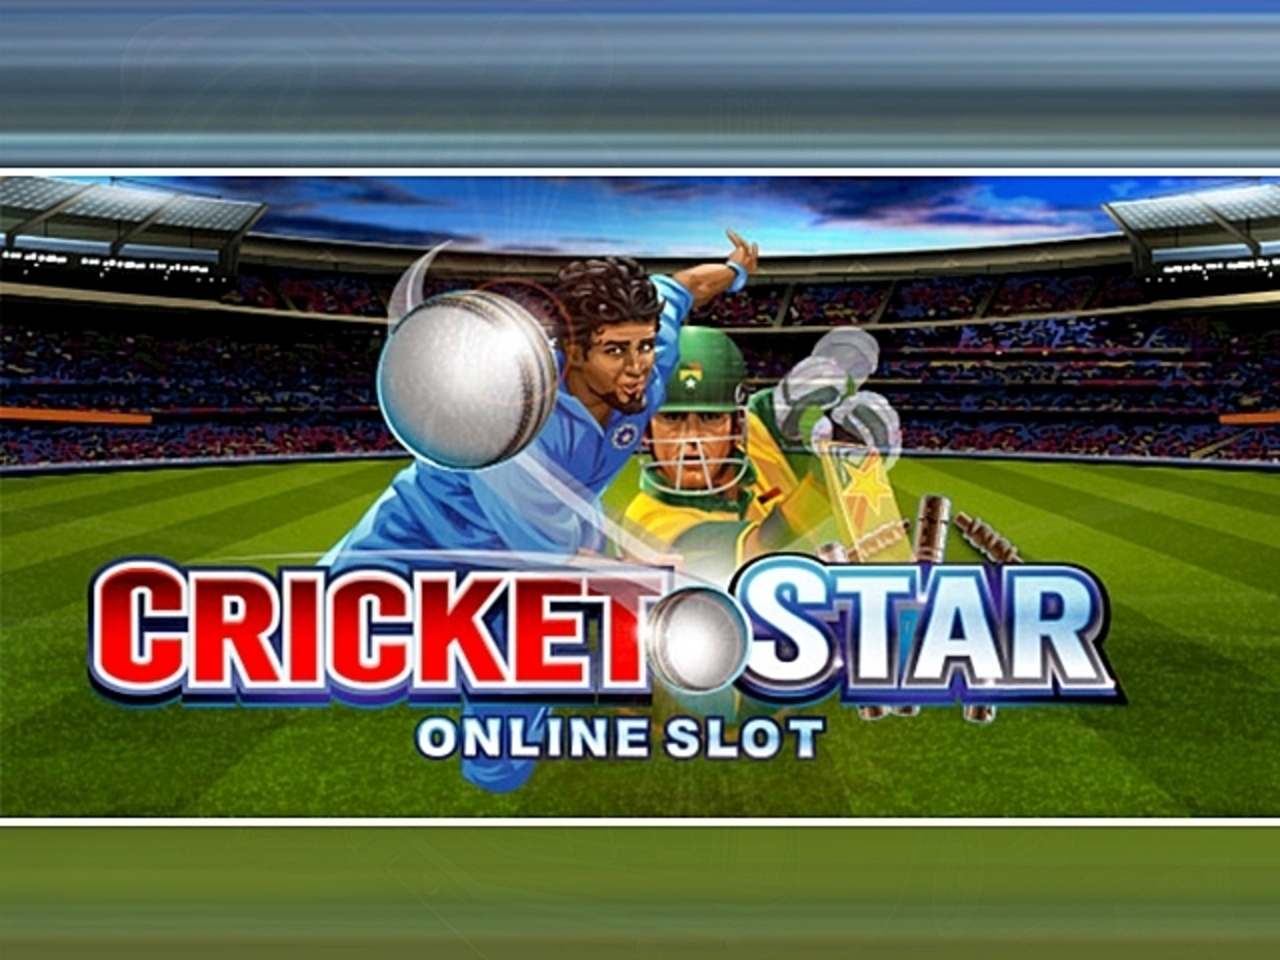 The Cricket Star Online Slot Demo Game by Microgaming